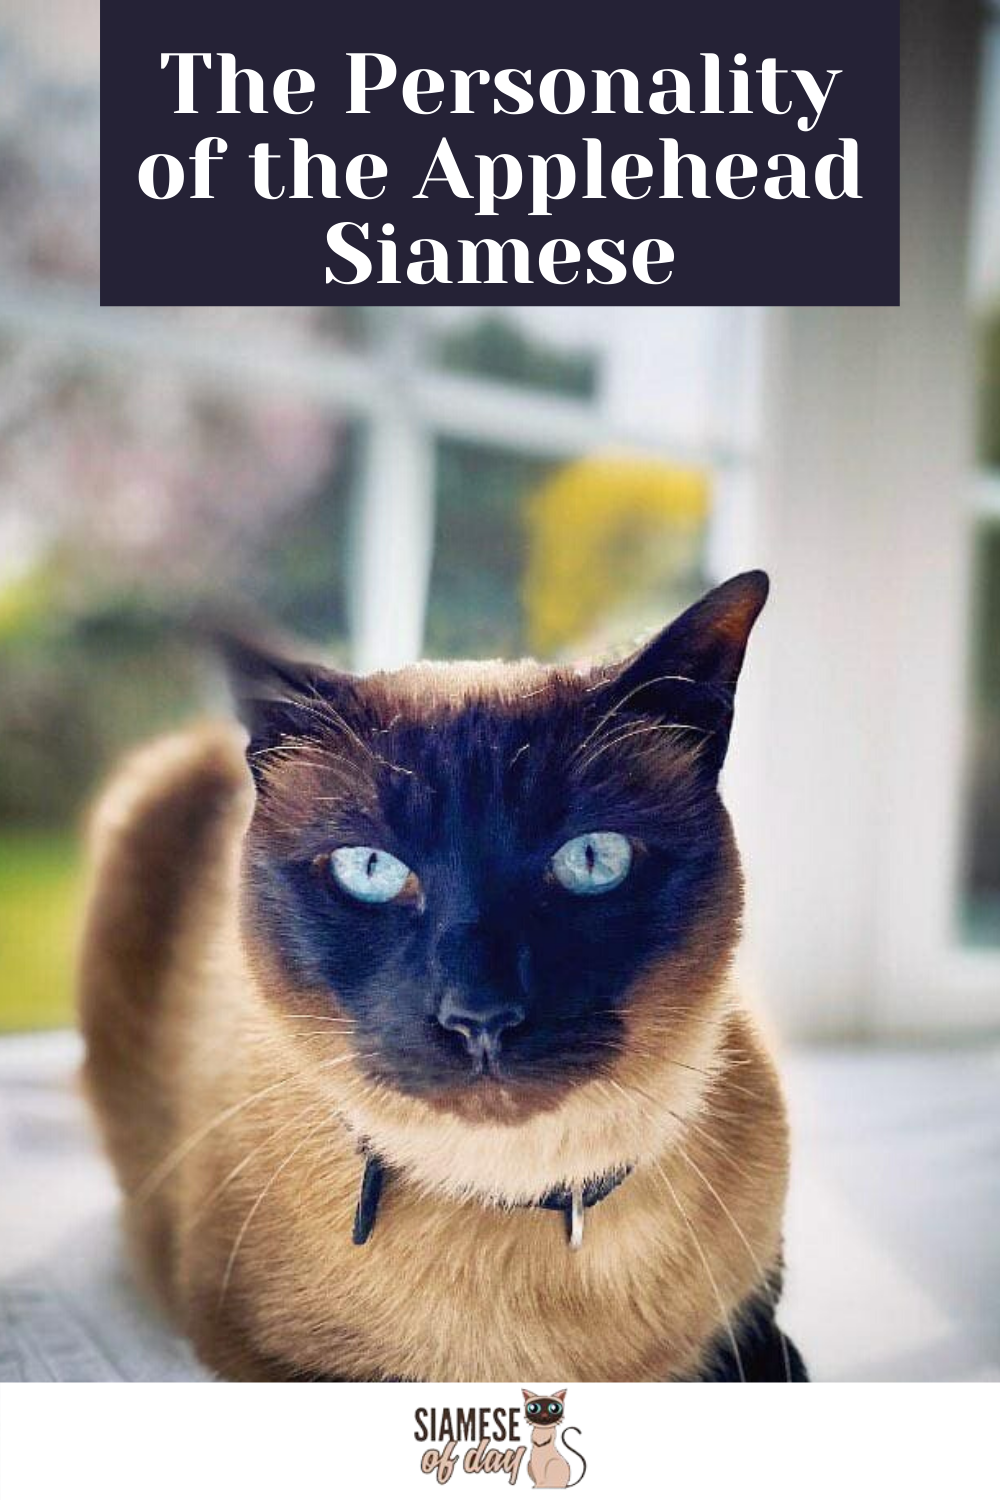 Applehead Siamese Cats What Are They? Siameseofday in